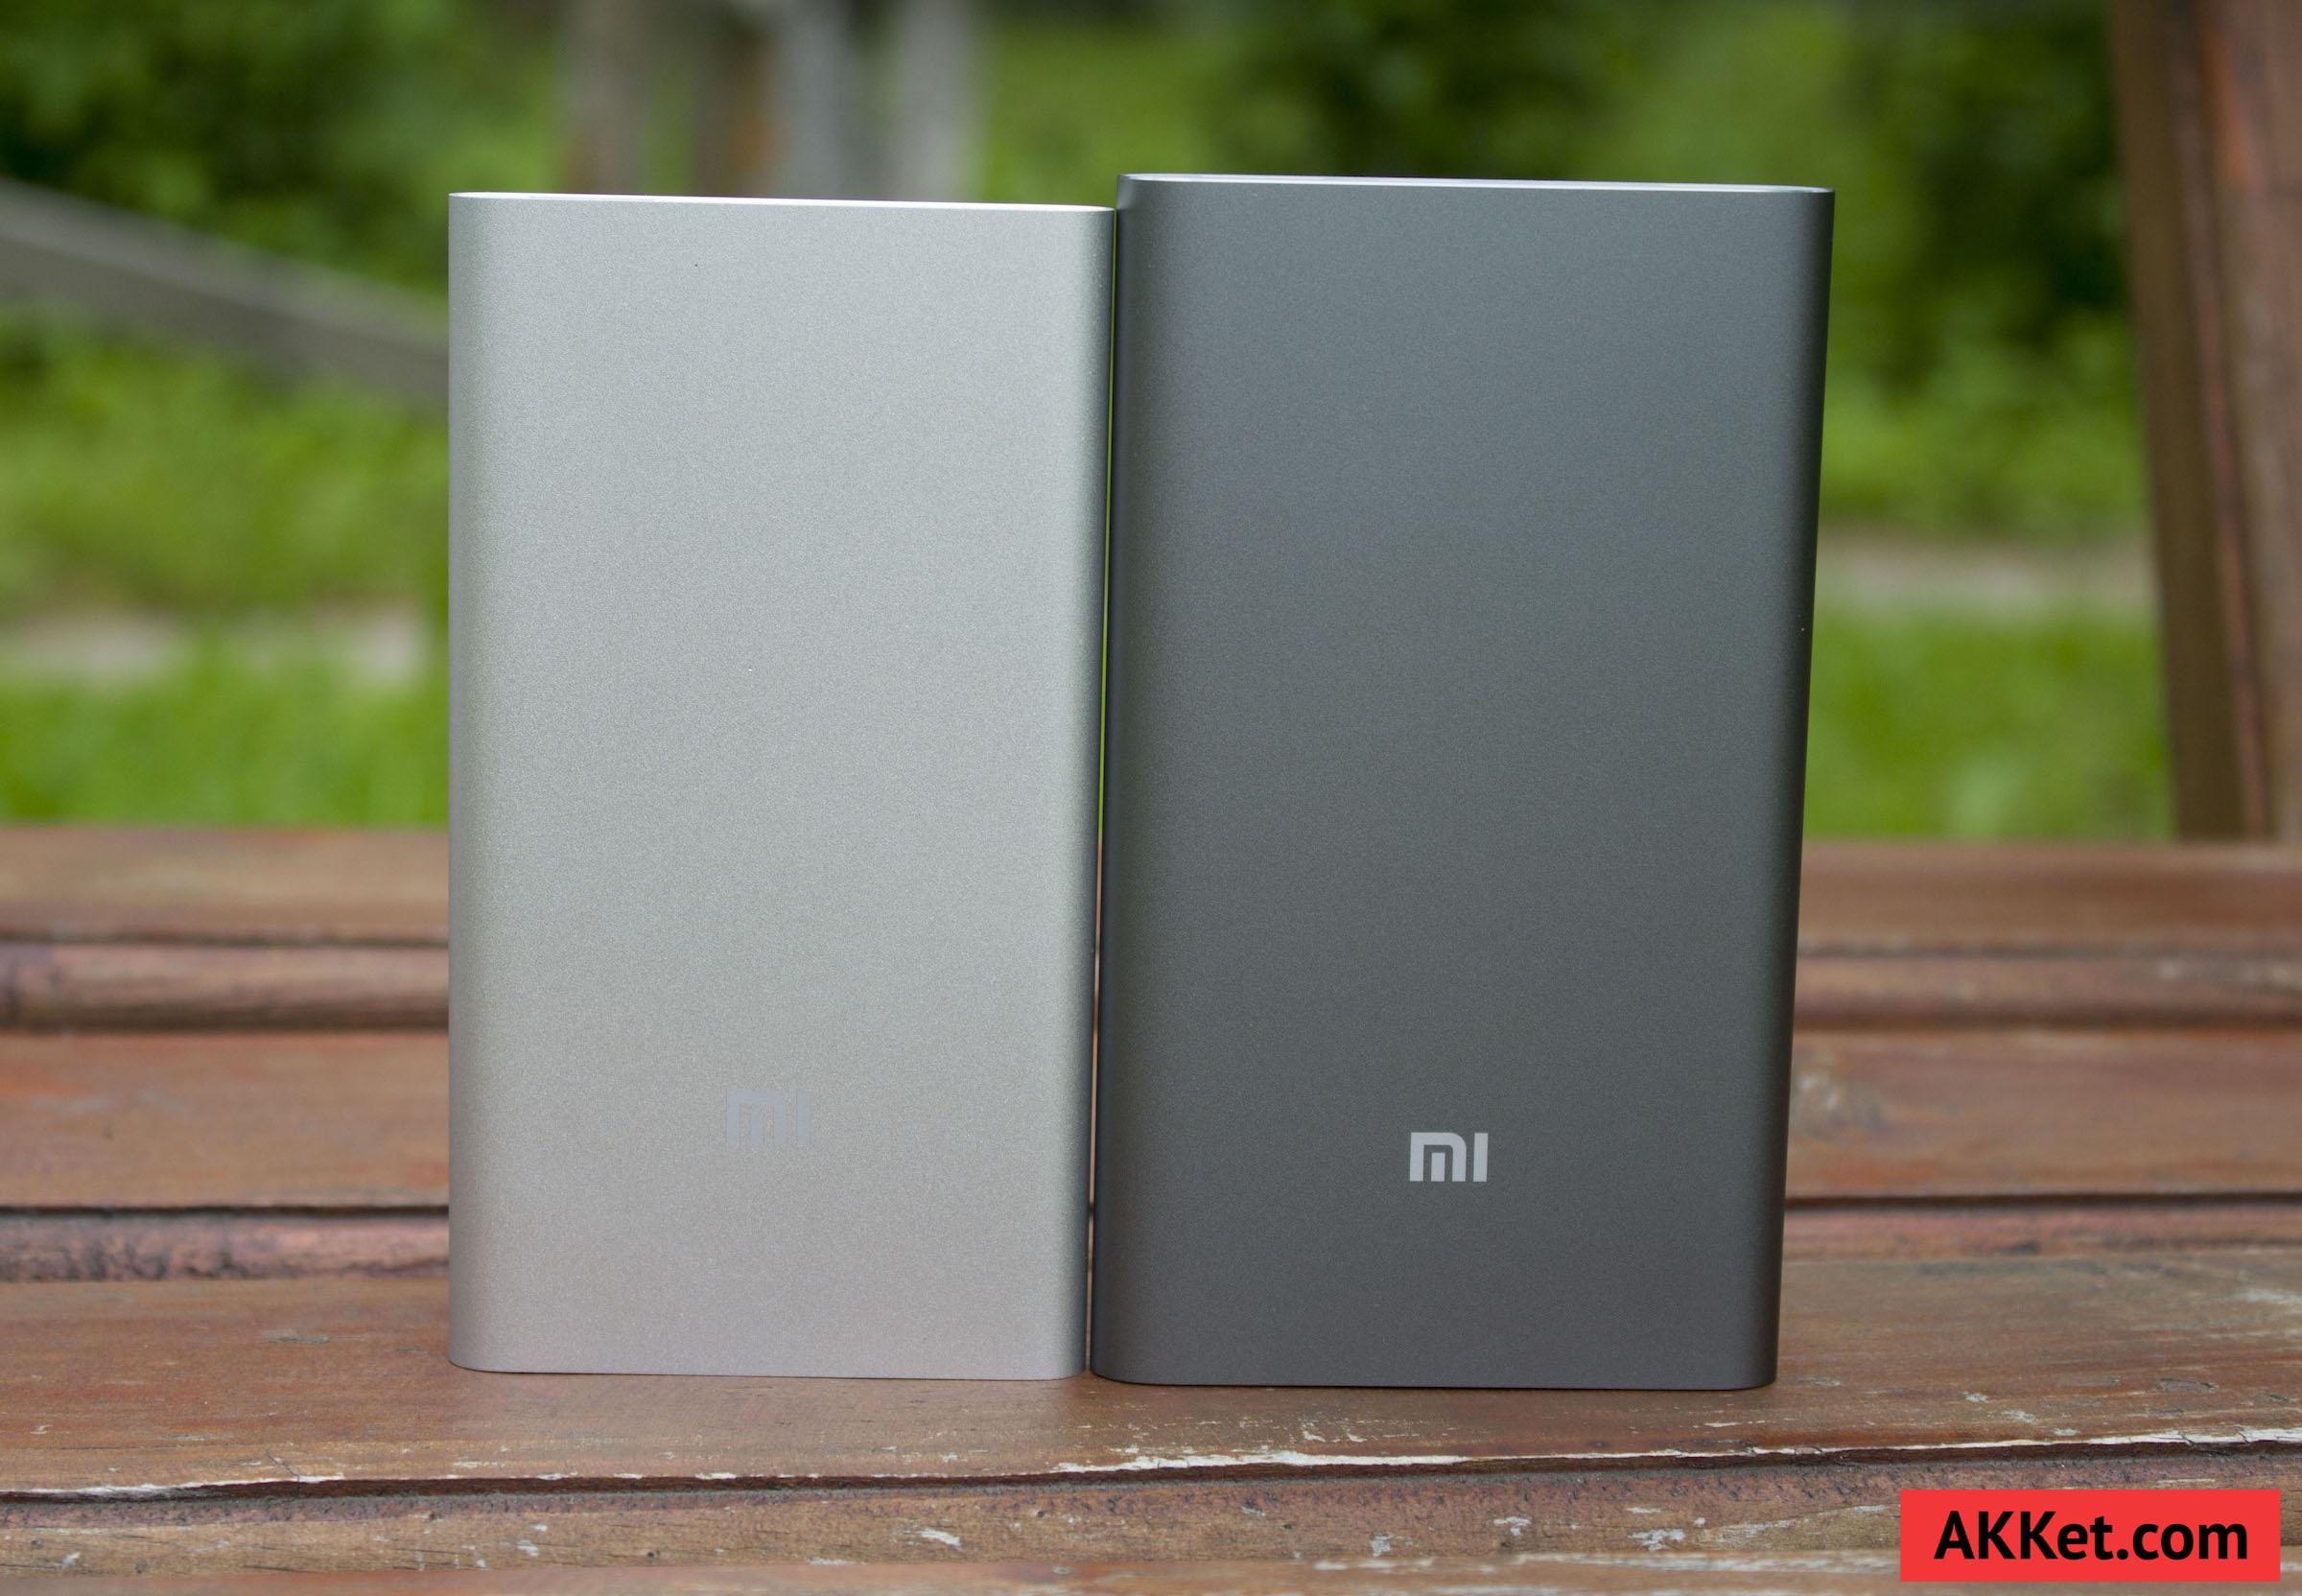 Xiaomi Mi Power Bank Pro 10000 мАч и Xiaomi Mi Power Bank 5000 мАч 5